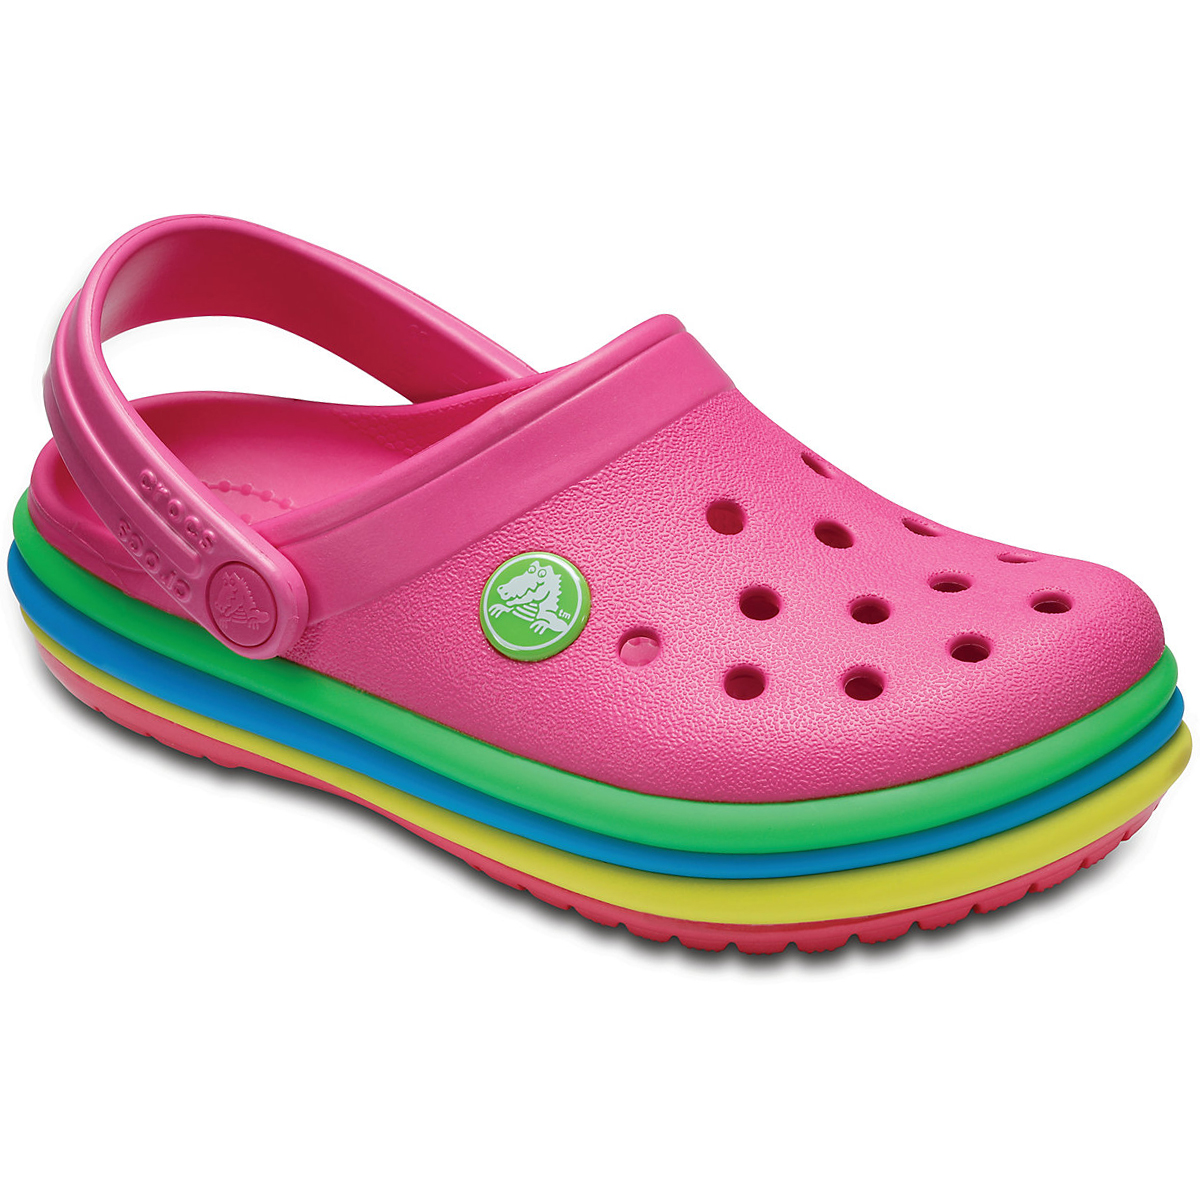 Crocs Kids' Crocband Rainbow Band Clog - Red, 11